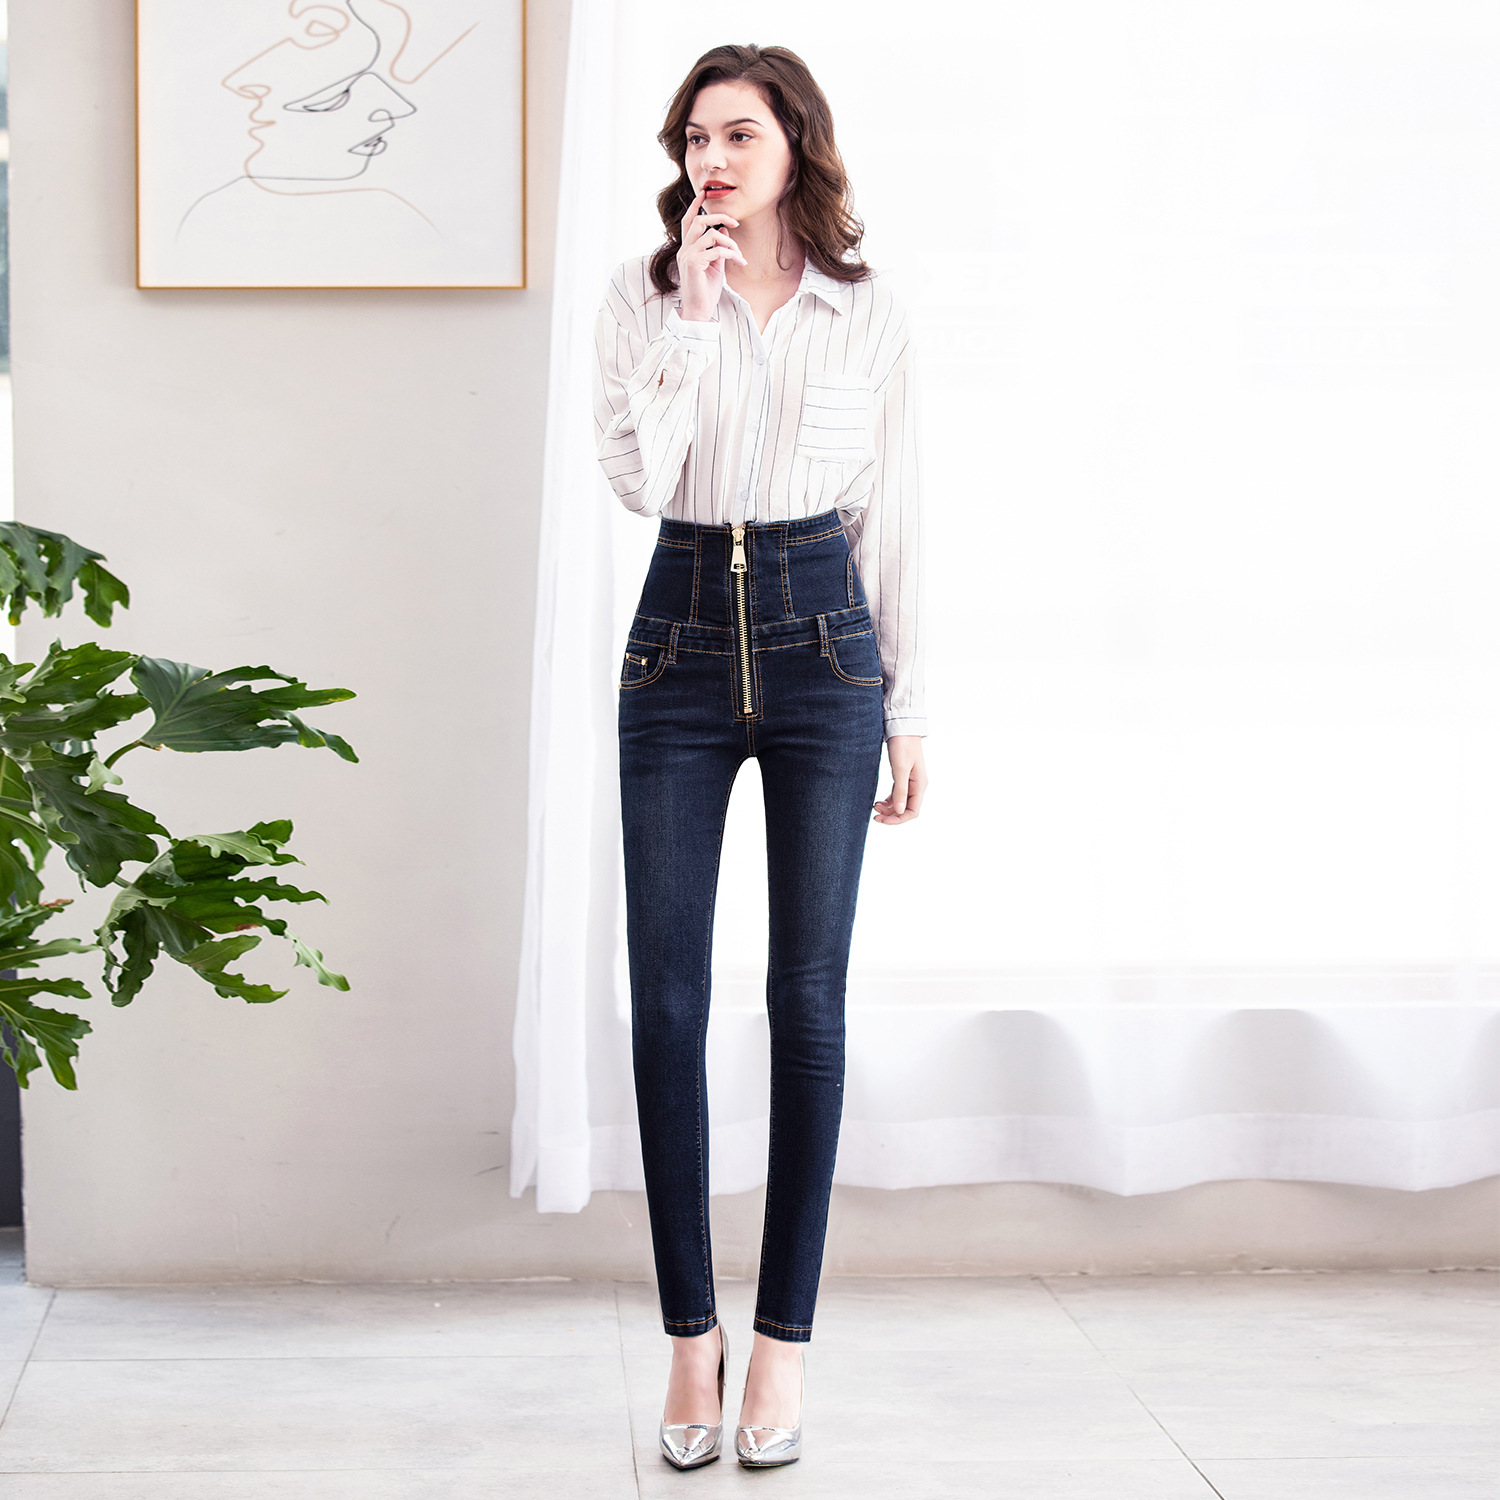 2019 Autumn New Style High-waisted Large Zipper Jeans Black With Thin Look Skinny Pencil Pants Large Size Jeans Women's